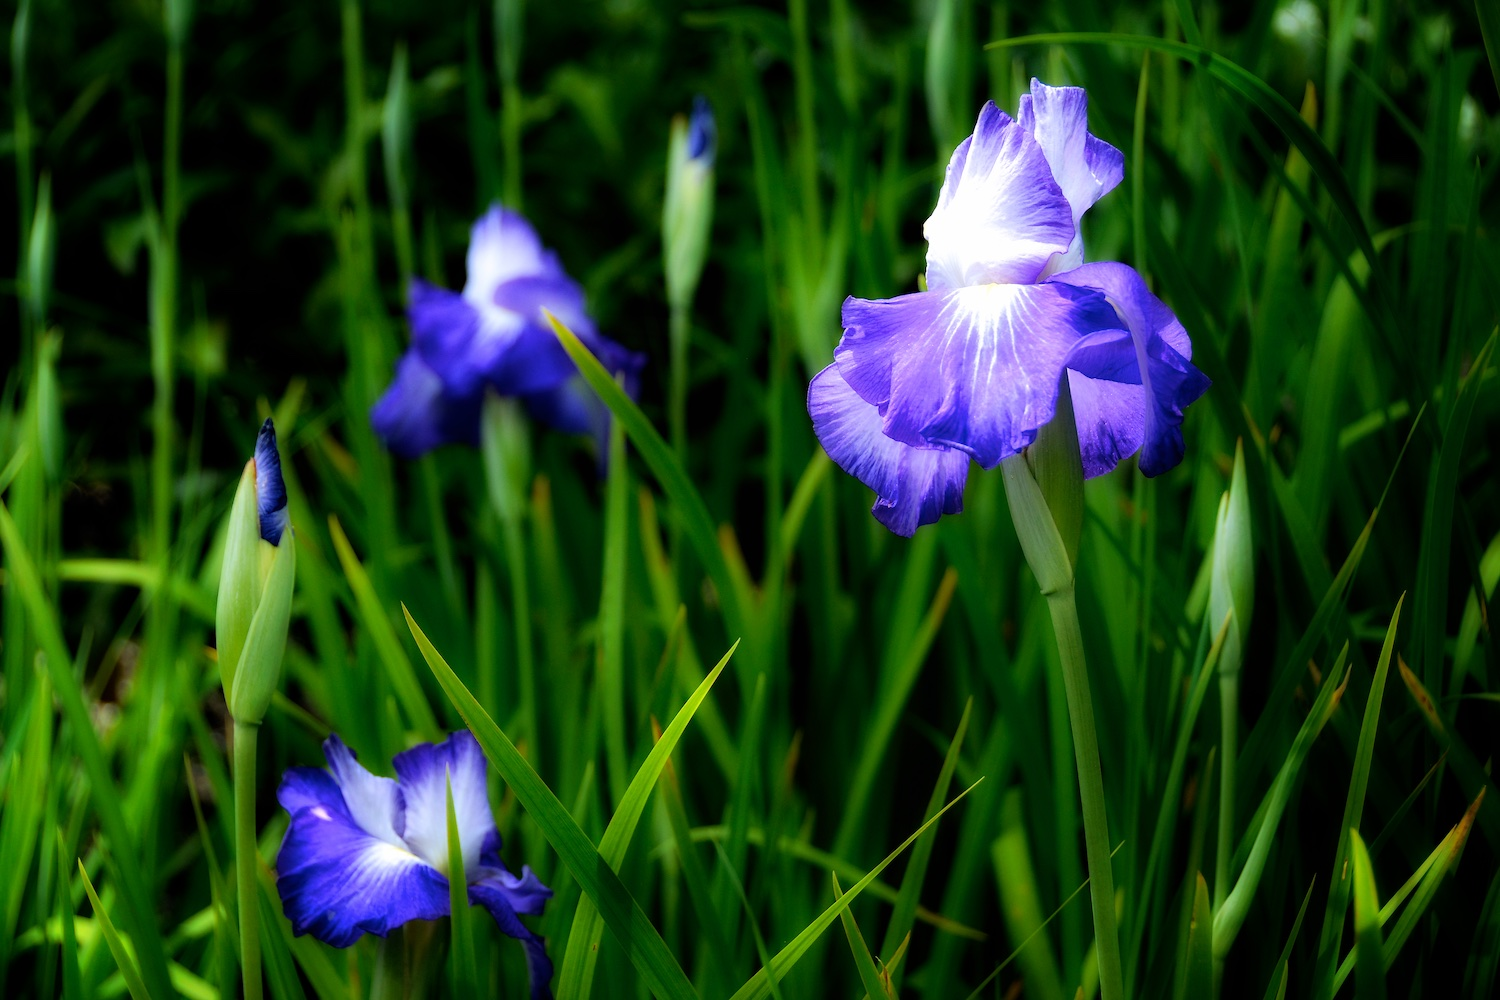 Japanese iris are late bloomers